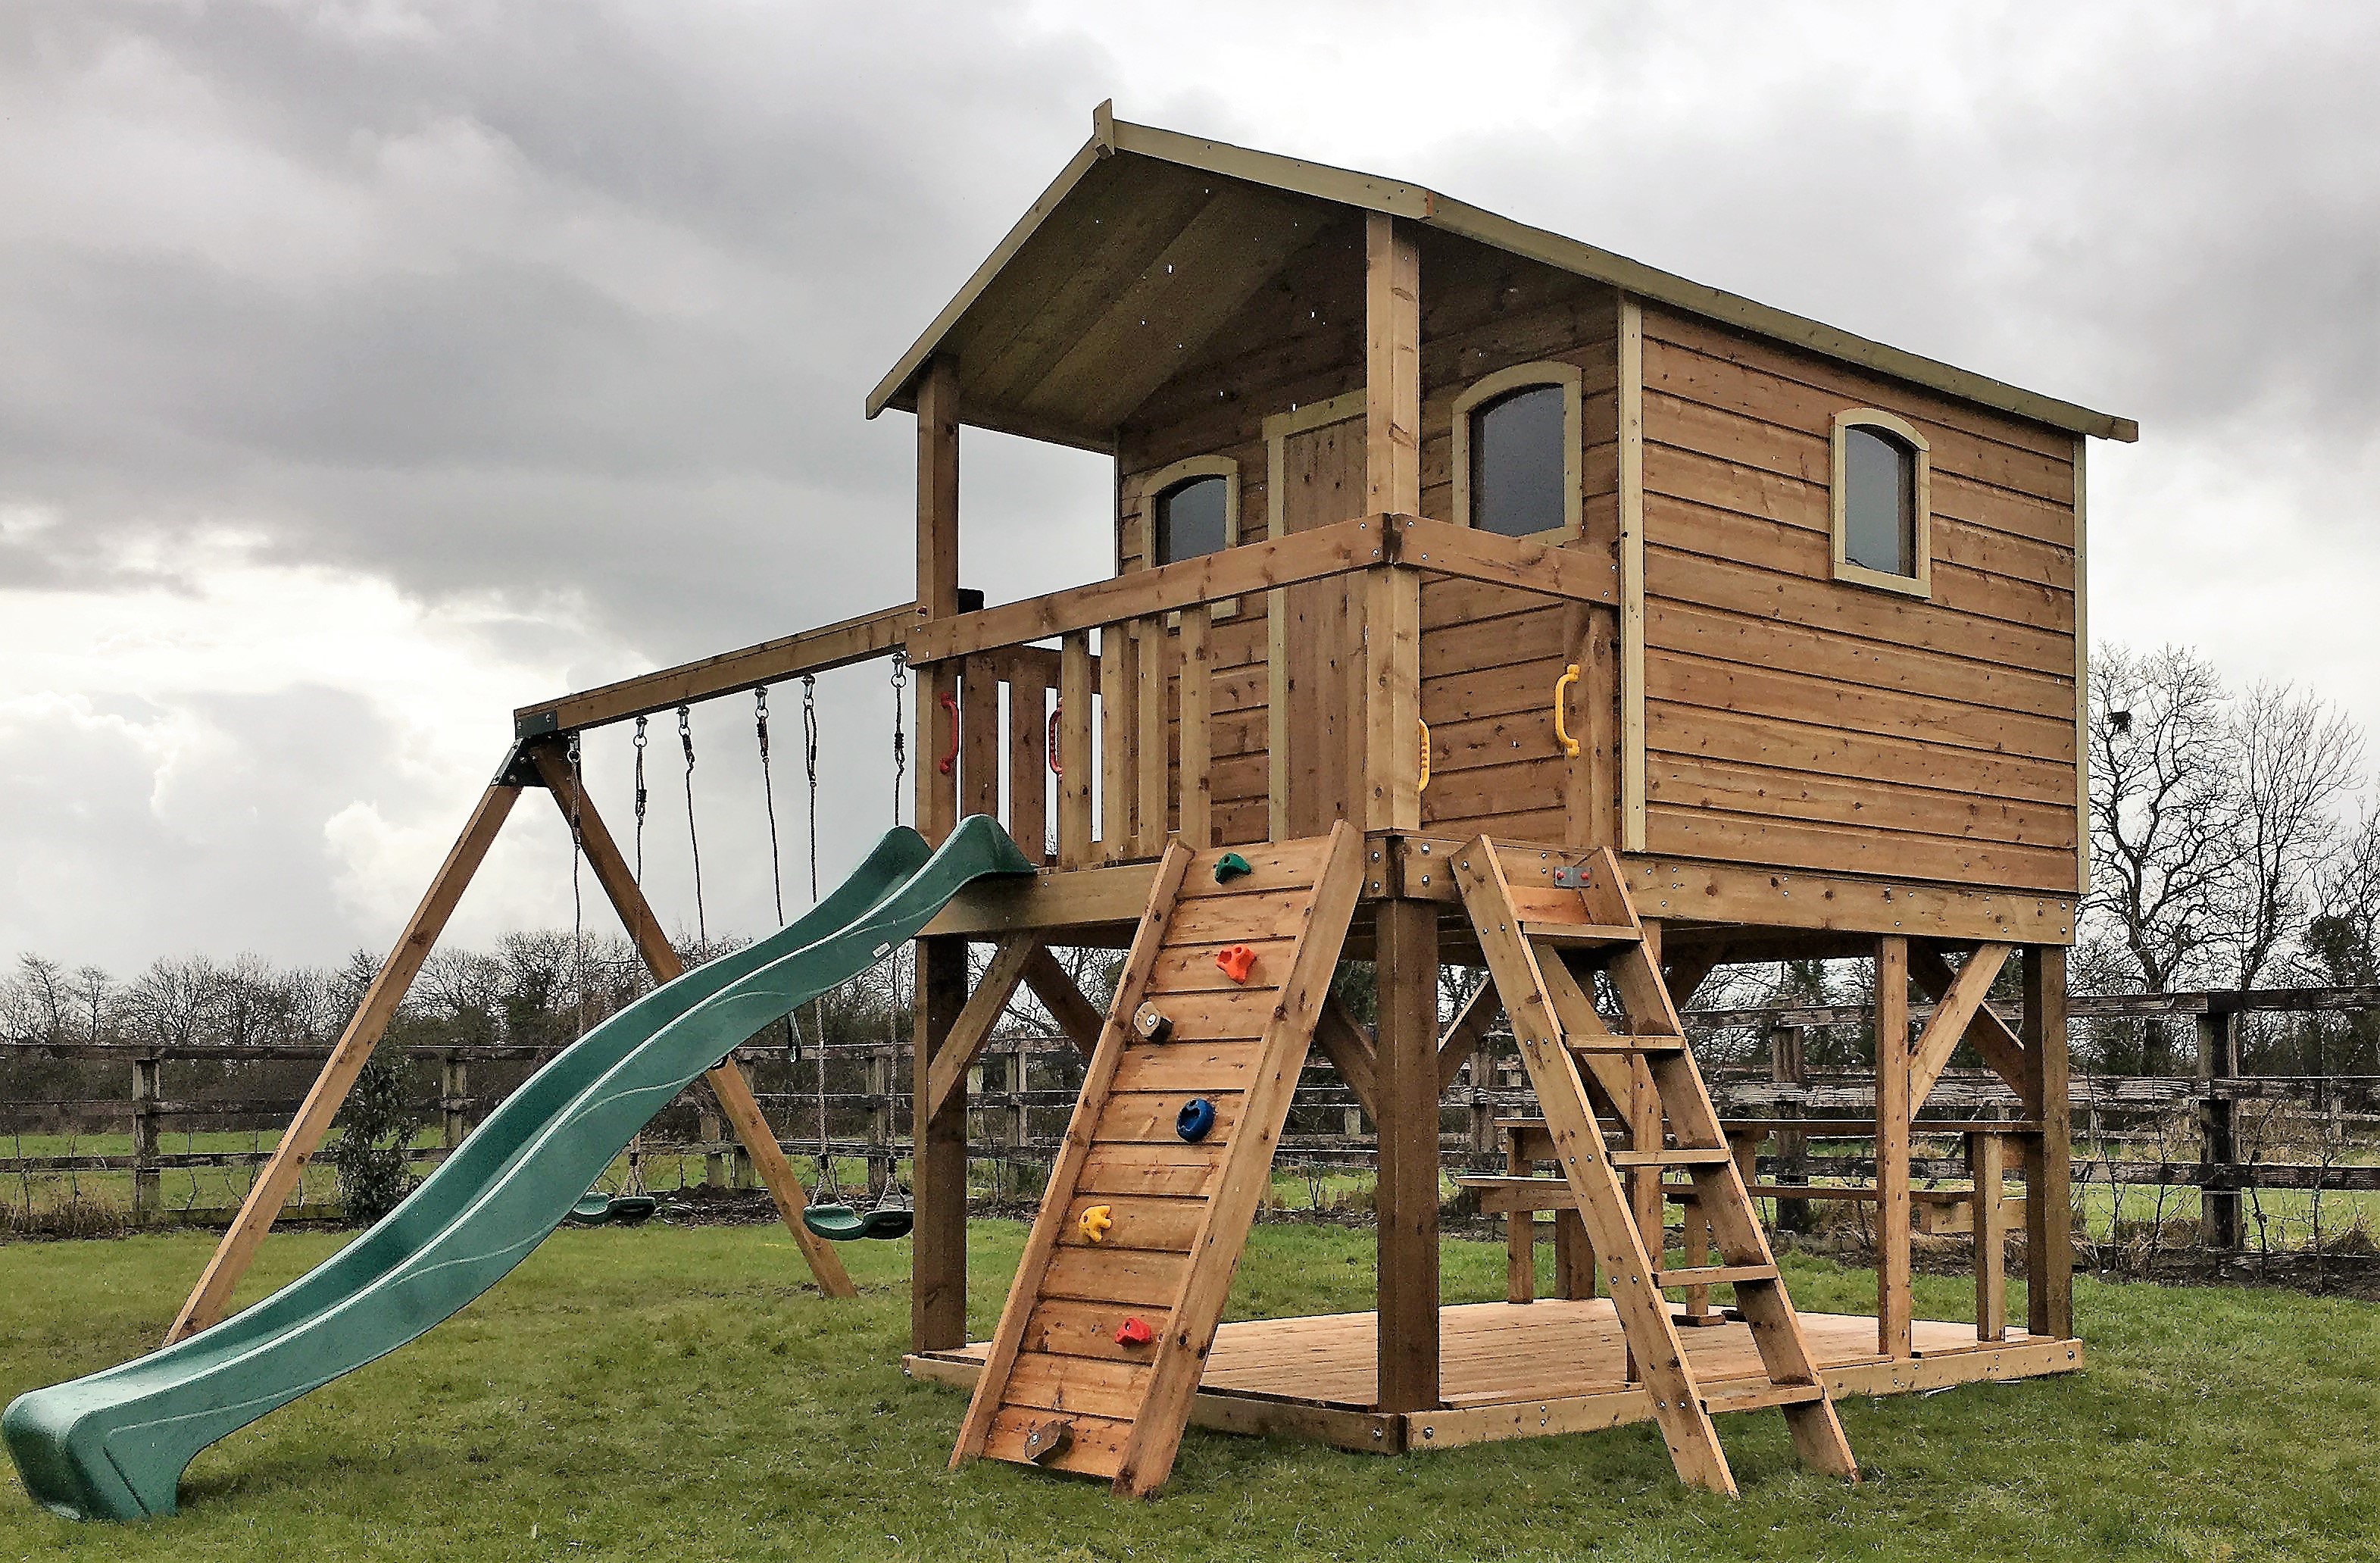 Super Sized Deluxe Tree House Swings 10ft Slide Picnic